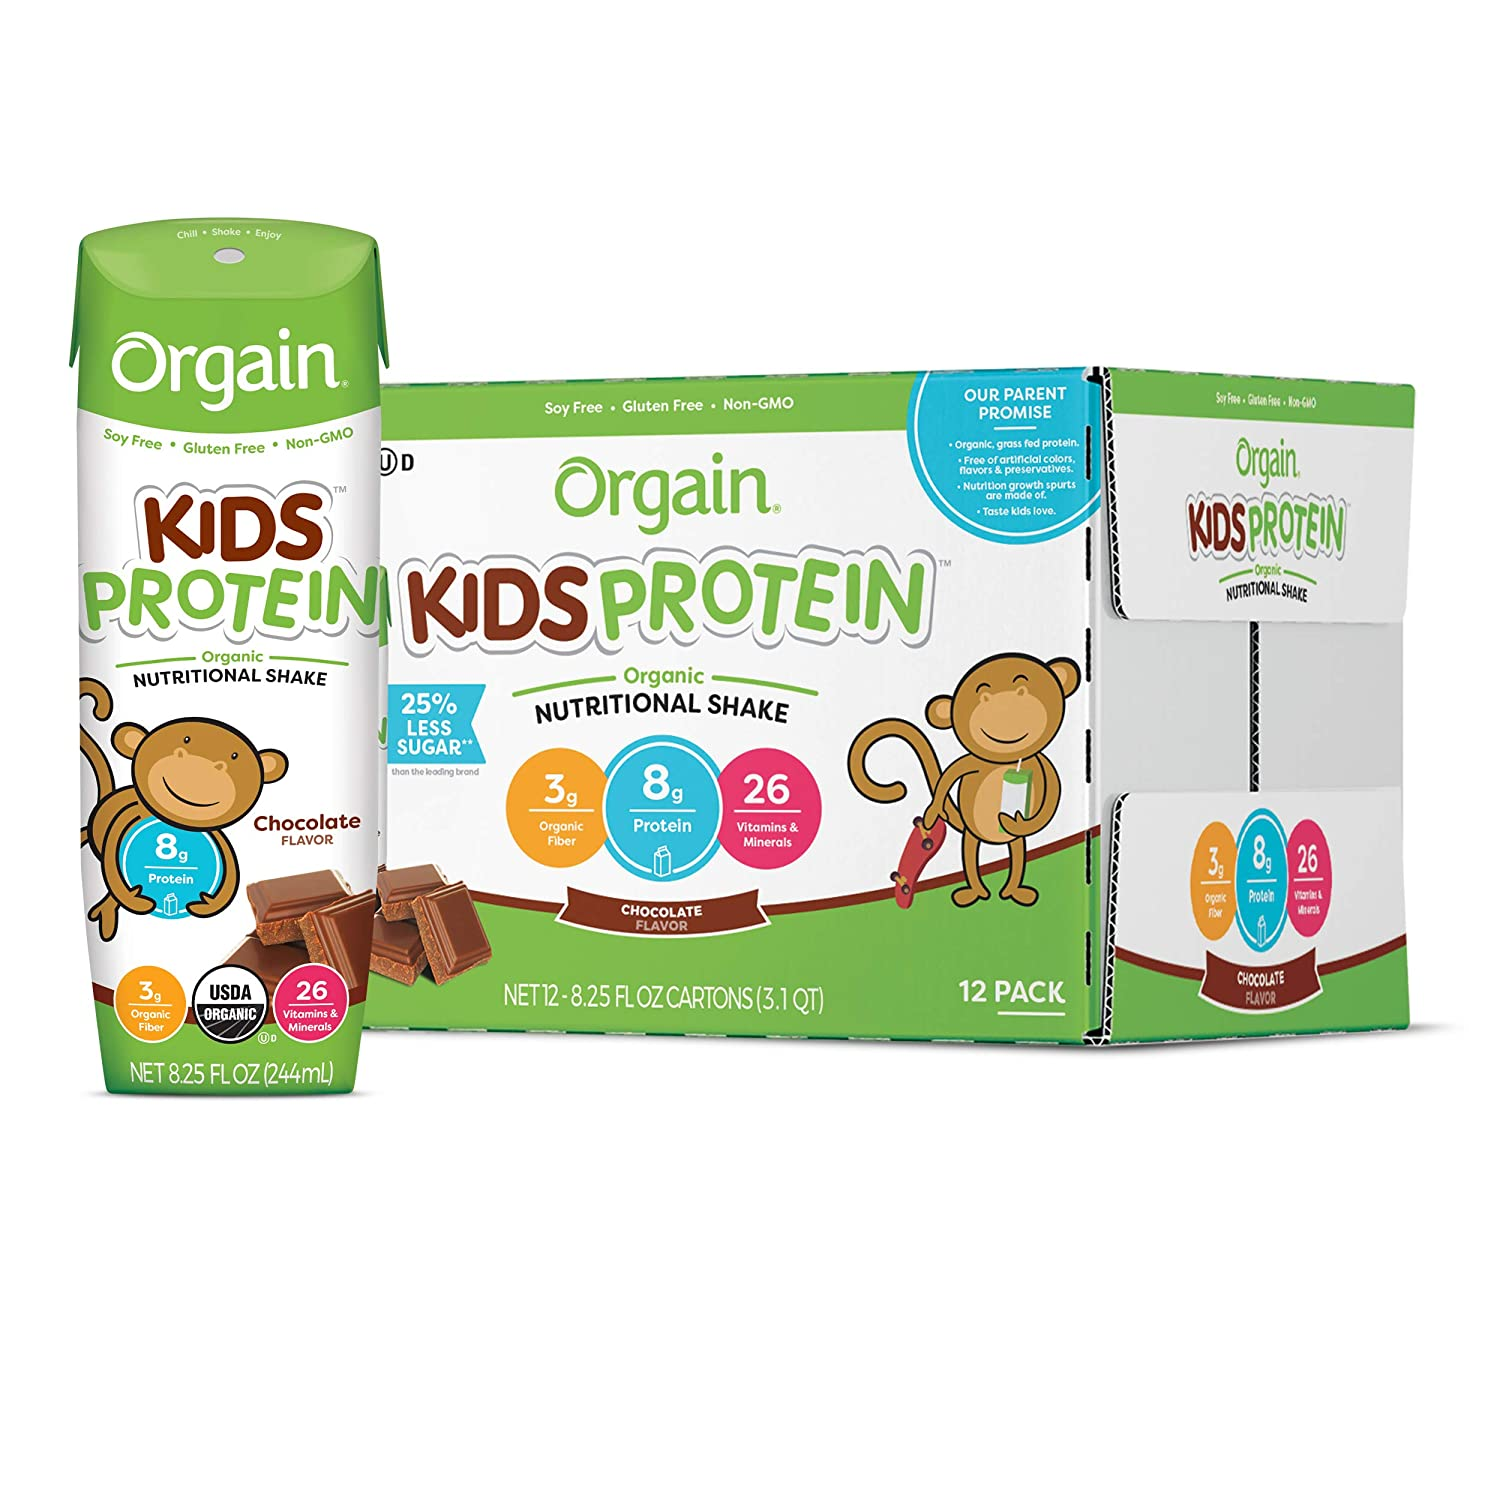 Orgain Organic Kids Protein Nutritional Shake, Chocolate - Great for Breakfast & Snacks, 26 Vitamins & Minerals, 10 Fruits & Vegetables, Gluten Free, 8.25 Ounce, 12 Count (Packaging May Vary) : Meal Replacement Drinks : Grocery & Gourmet Food